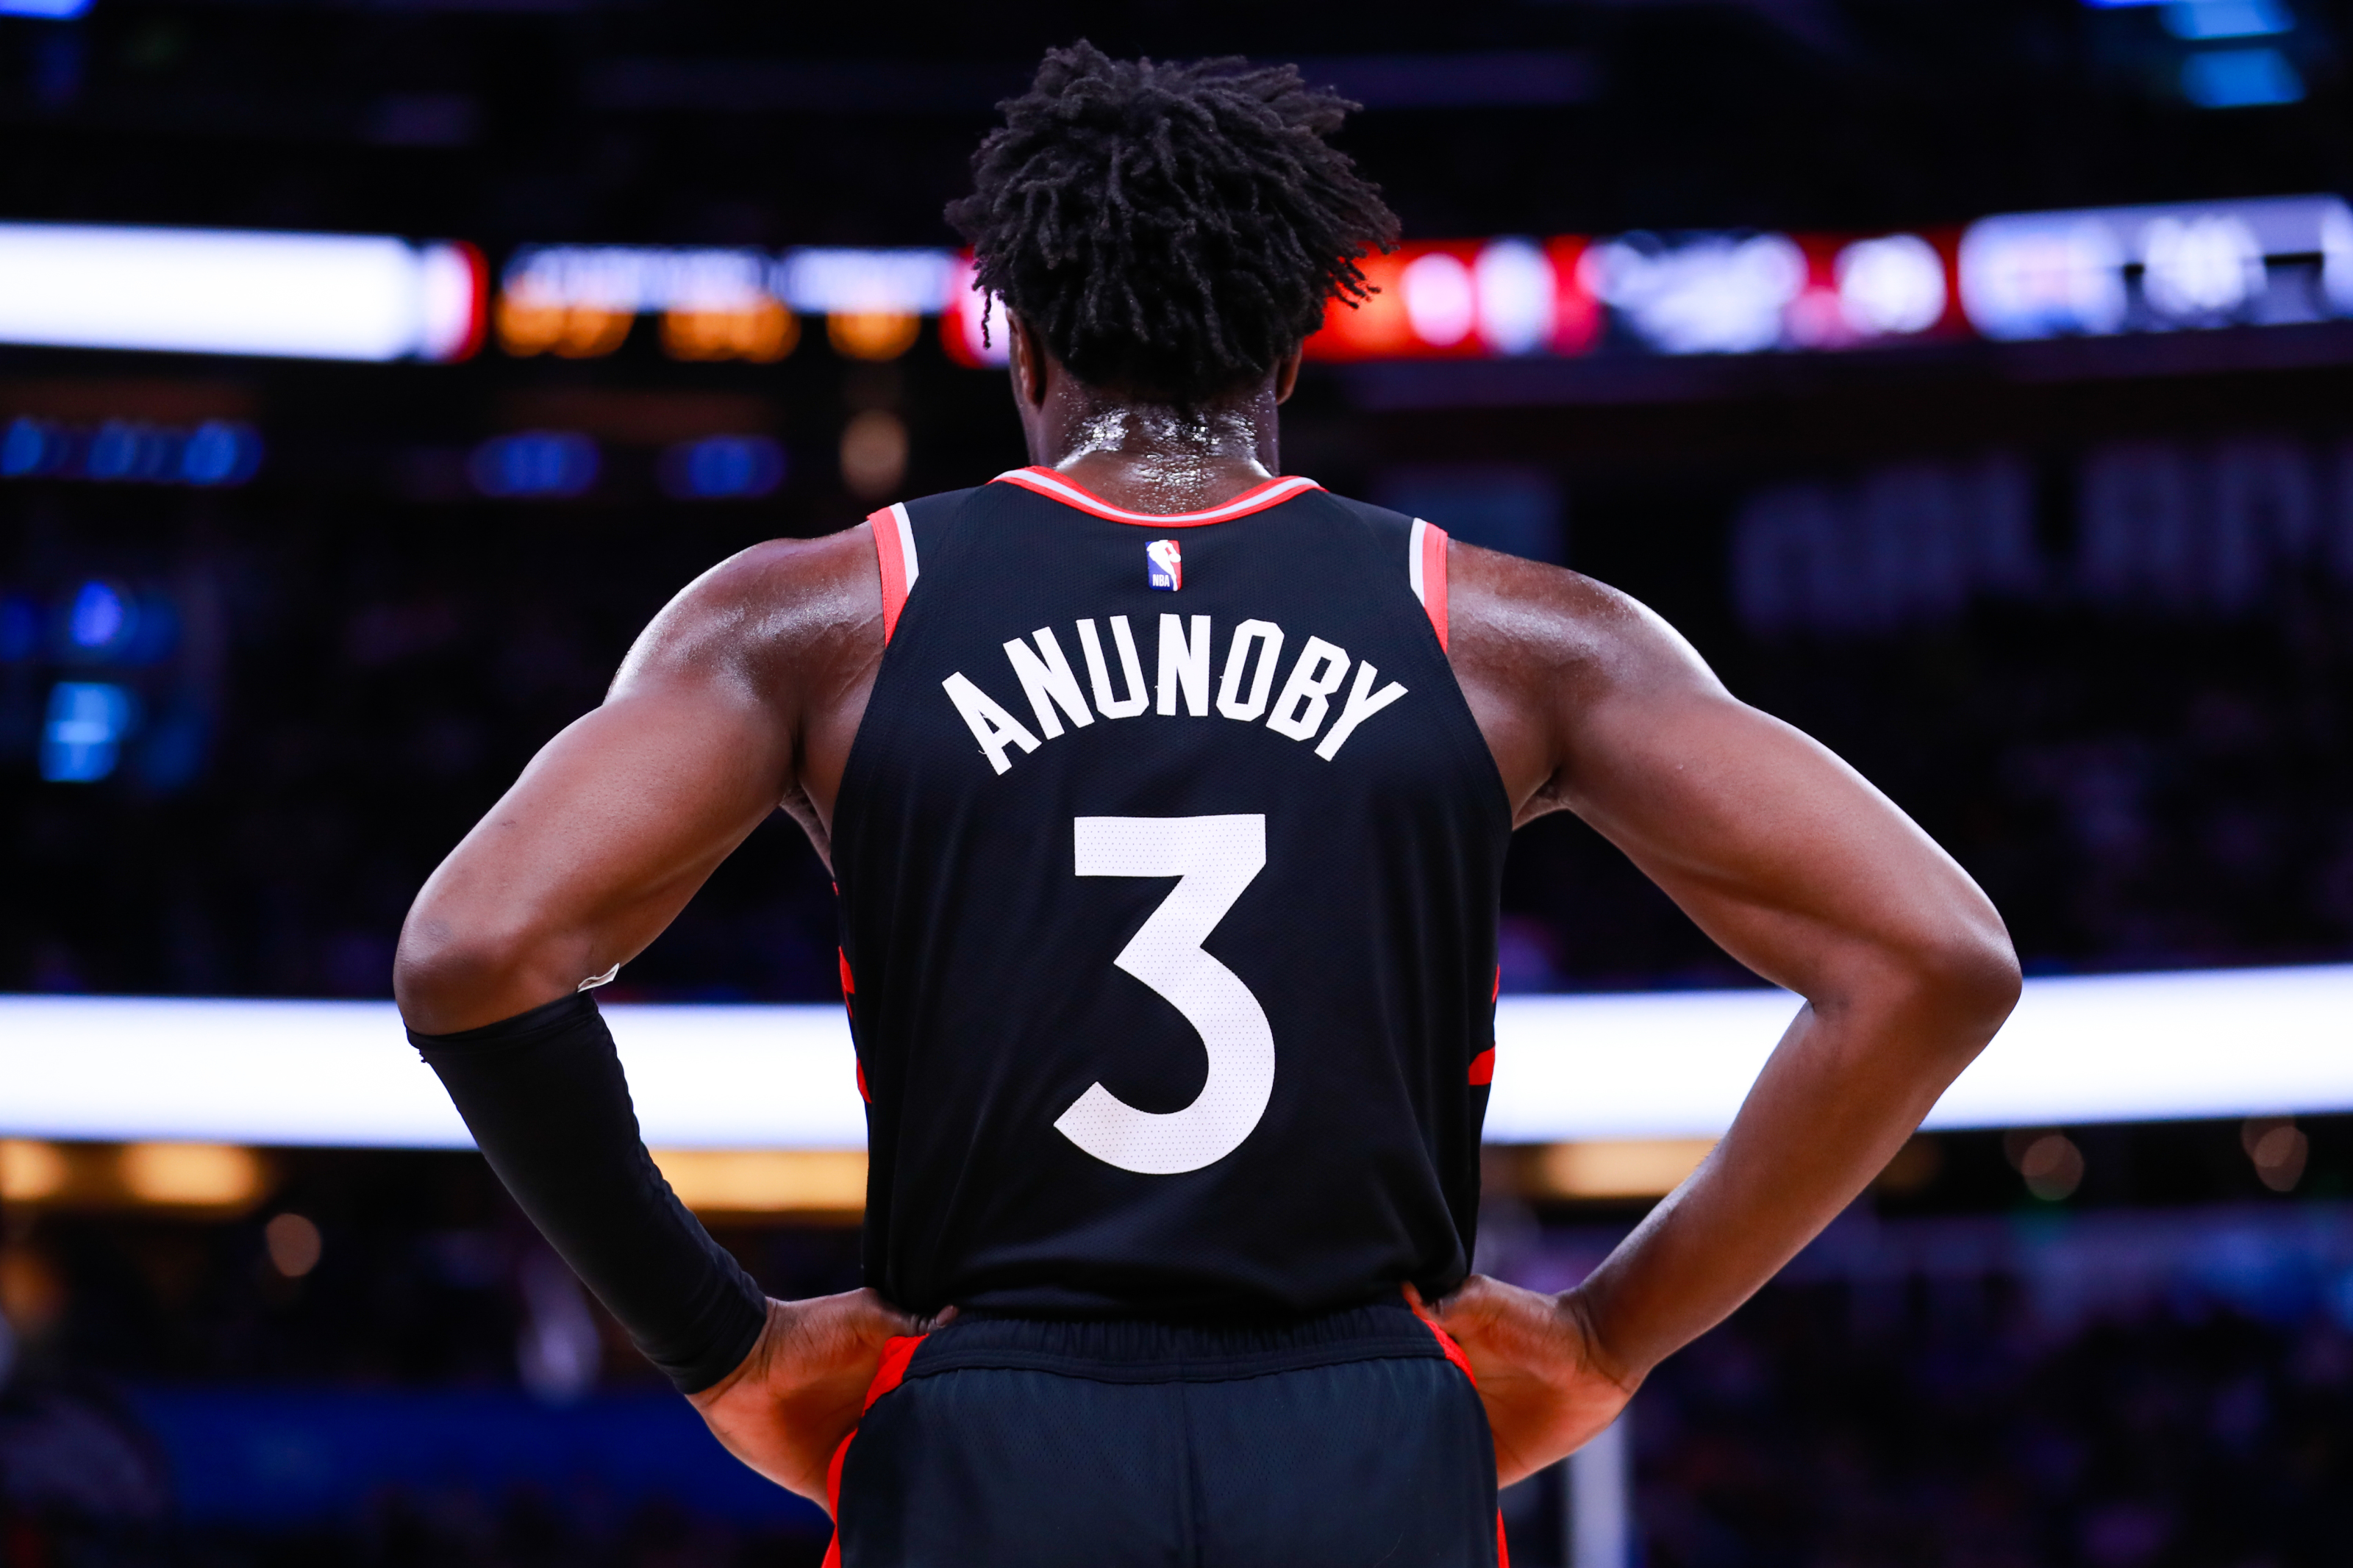 Toronto Raptors: OG Anunoby overcame obstacles for a rising stars bid